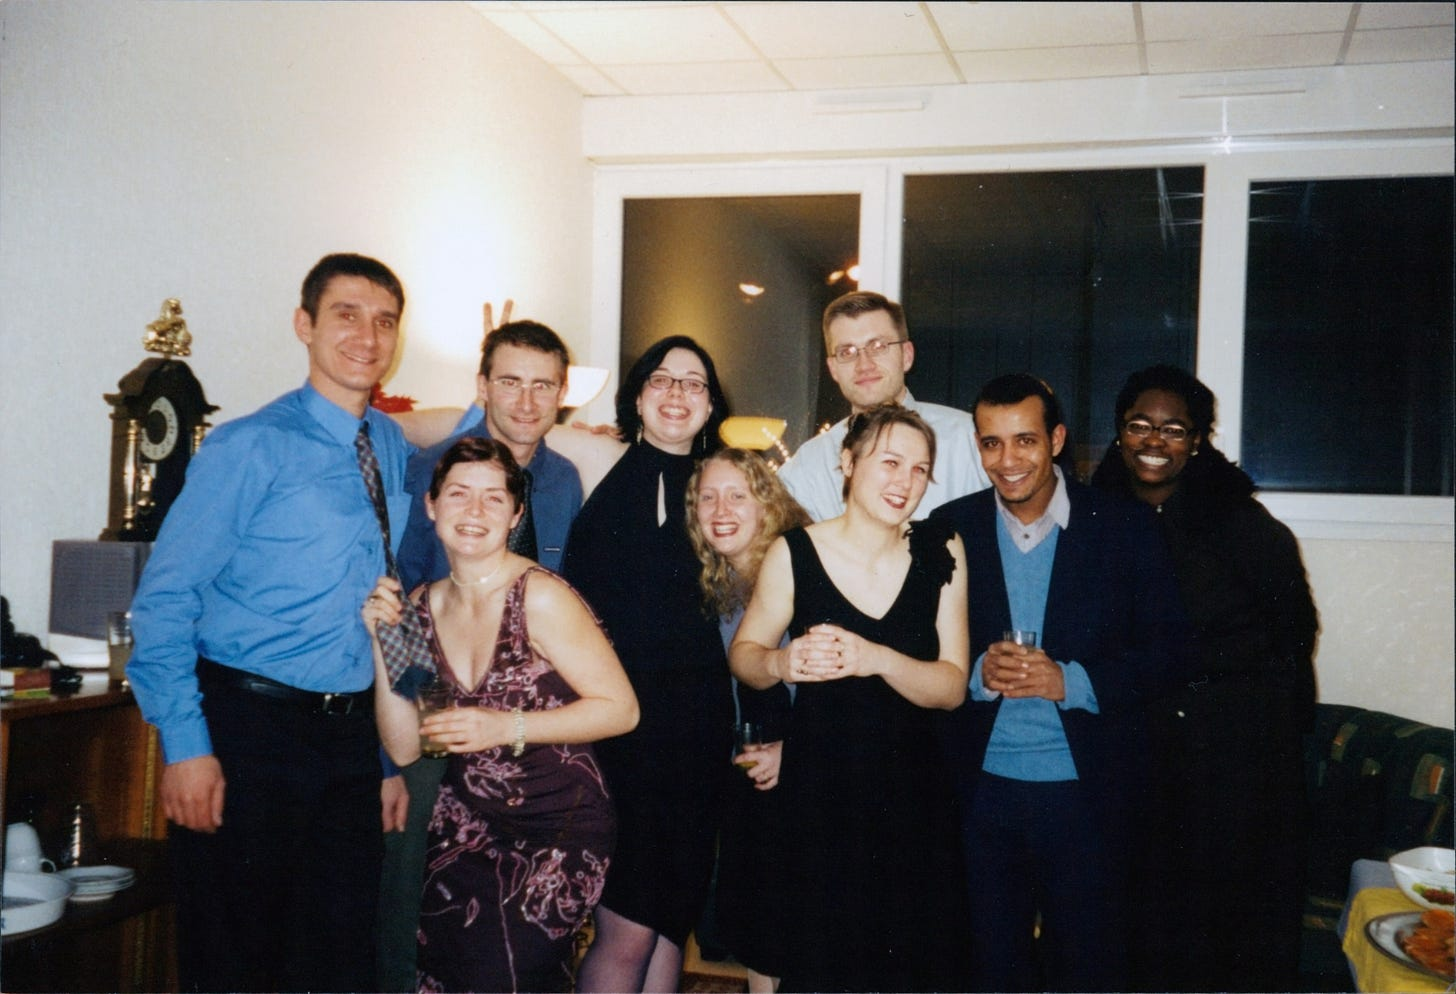 A group of men and women in festive dinner dress standing and smiling for the camera.